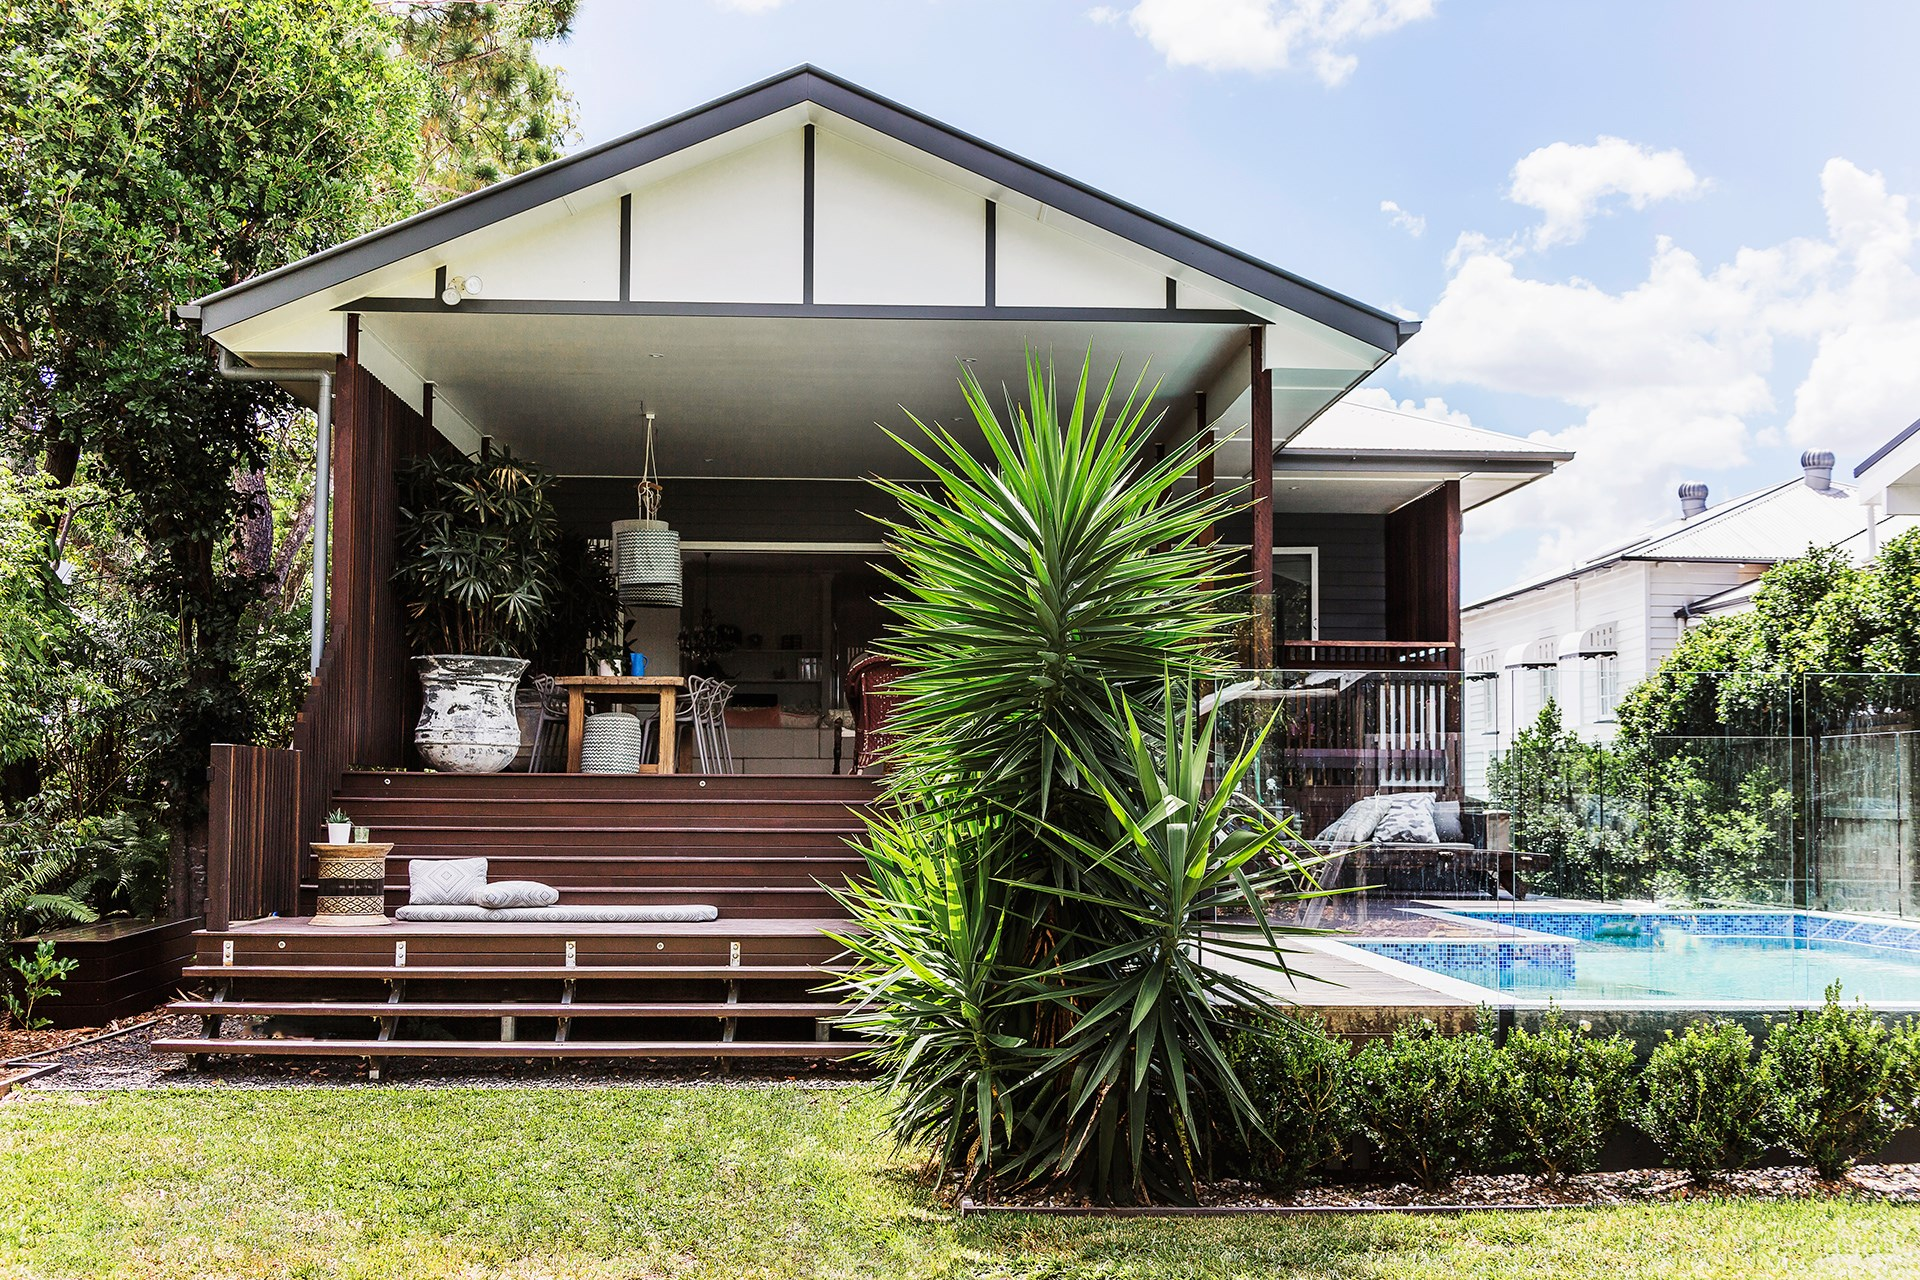 The Brisbane climate allows the owners of this [renovated 1930s Queenslander](http://www.homestolove.com.au/gallery-lori-and-sanjays-relaxed-brisbane-queenslander-1679) to enjoy the deck area year round. Photo: Maree Homer